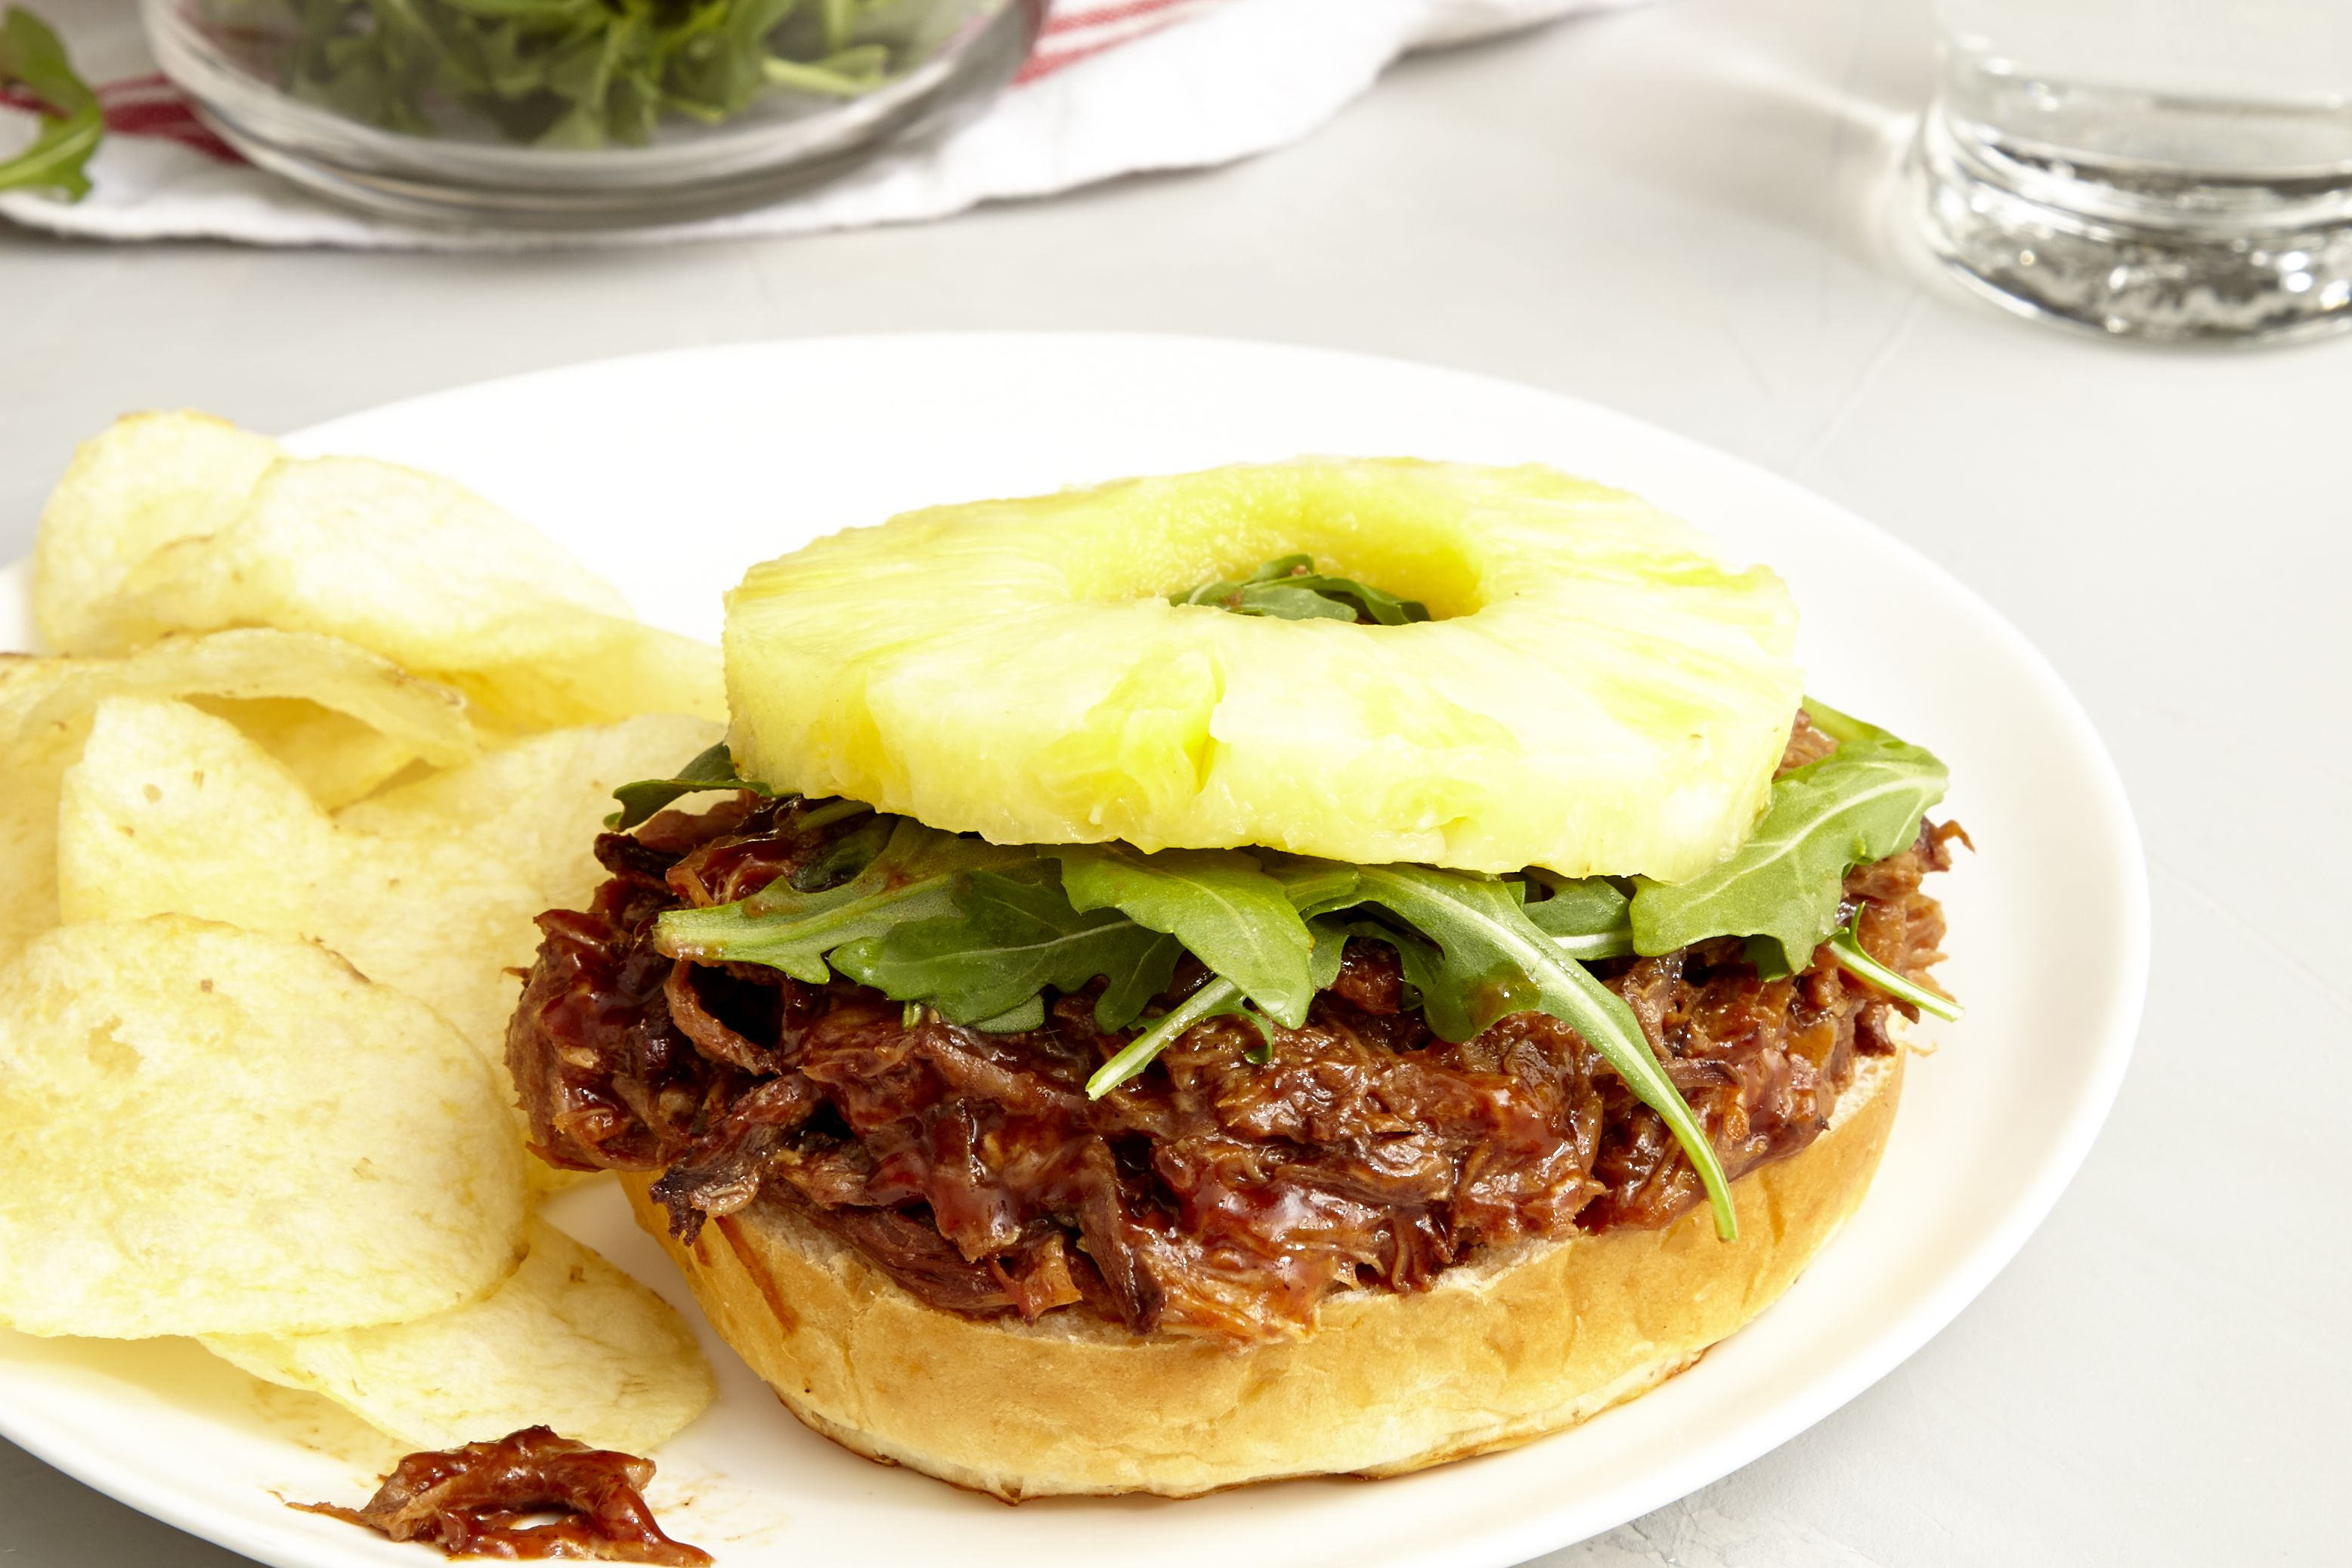 Captivating Slow Cooker Pulled Pork Sandwiches Recipe How To Make Pulled Pork Slow Cooker Pulled Pork Sandwiches Recipe How To Make Pulled Hawaiian Pulled Pork Pressure Cooker Hawaiian Pulled Pork Tra nice food Hawaiian Pulled Pork